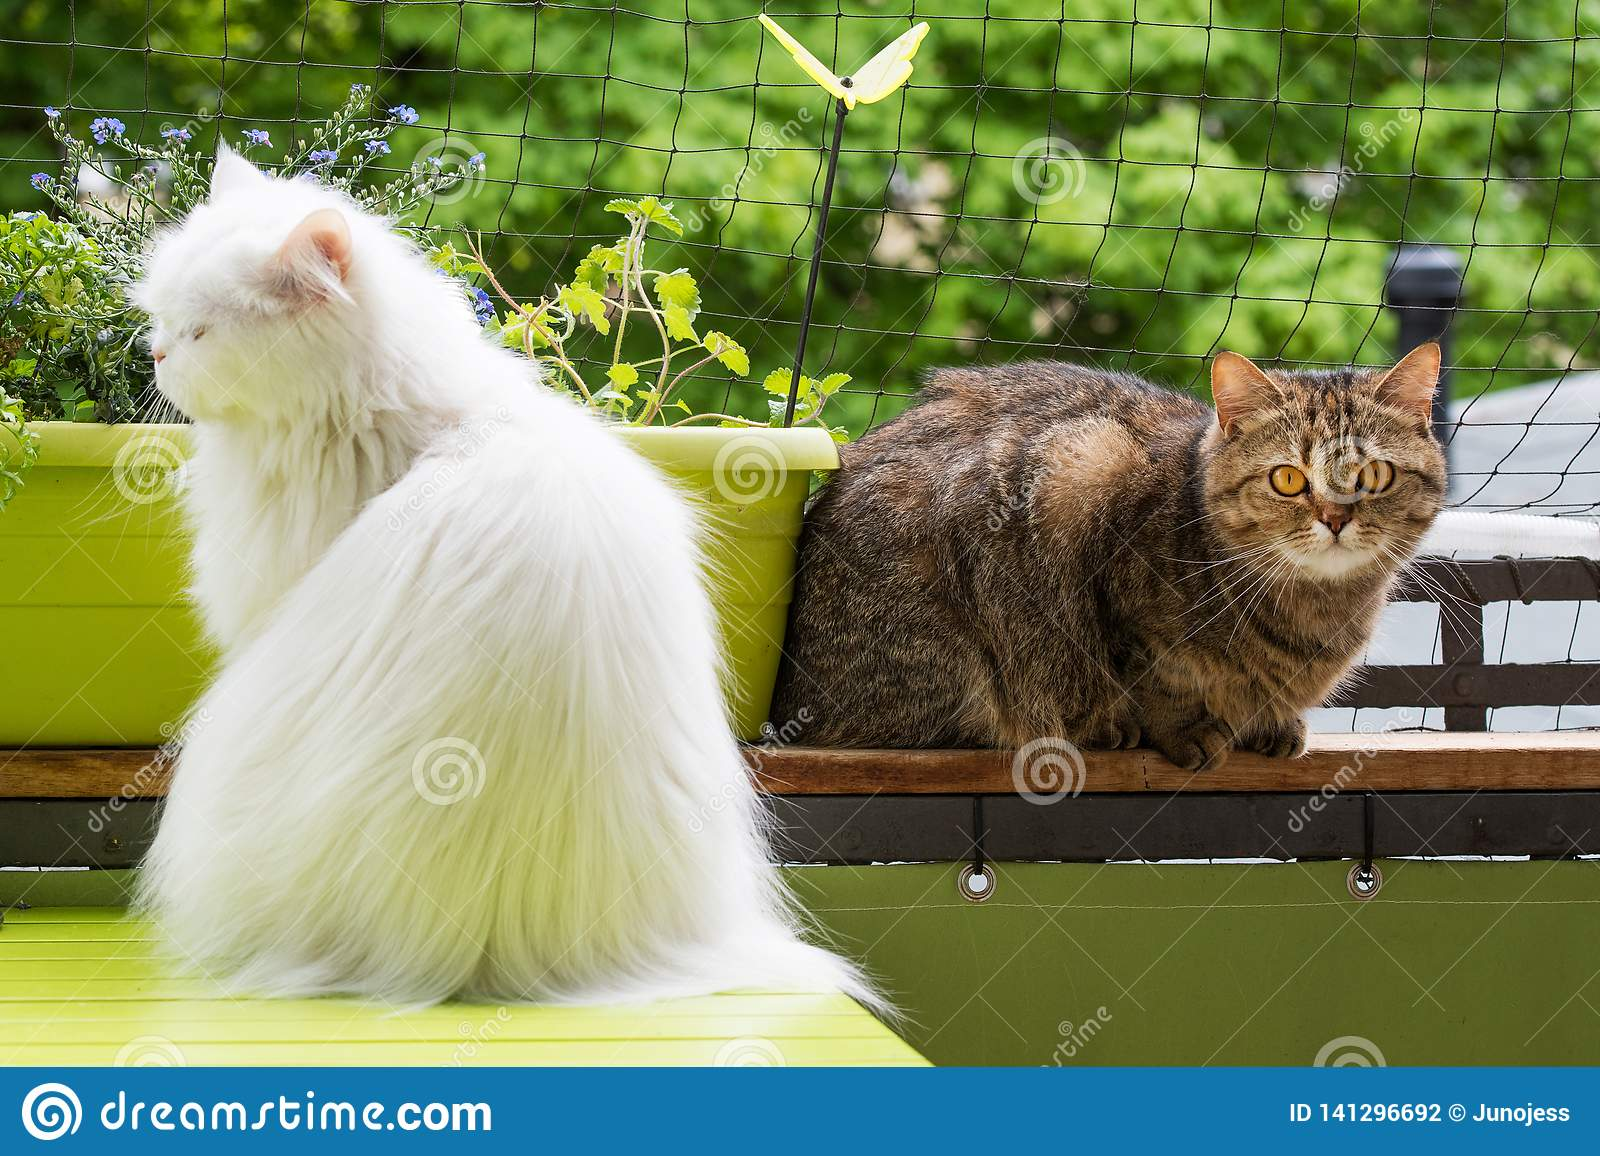 White Persian Cat And Brown Tabby Cat On Balcony Stock Photo Image Of Camera Green 141296692